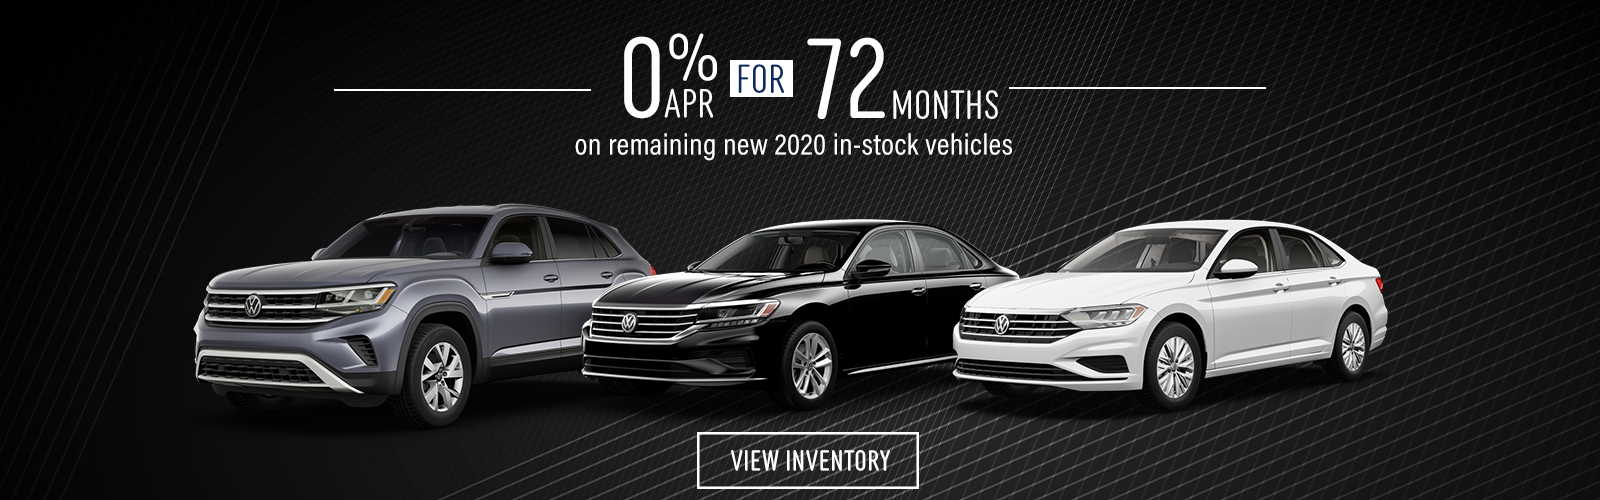 0% APR for 72 months on remaining 2020 vehicles